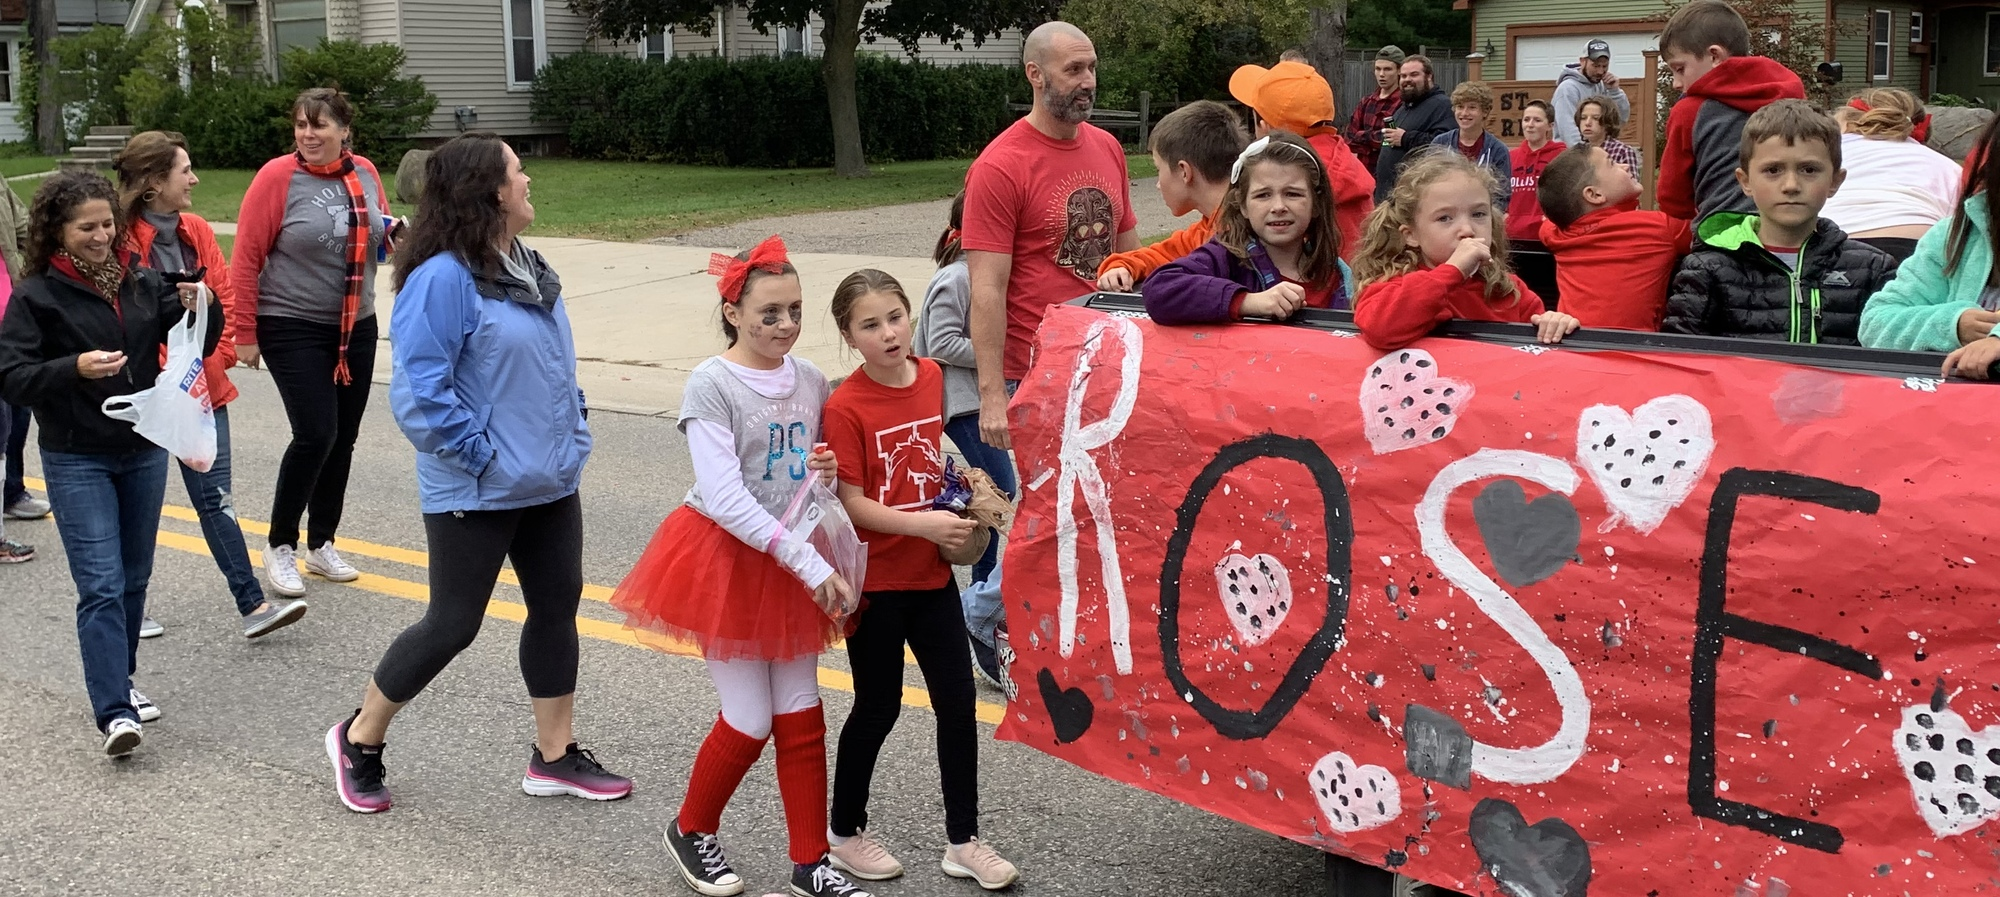 Rose Pioneer staff and students in the homecoming parade